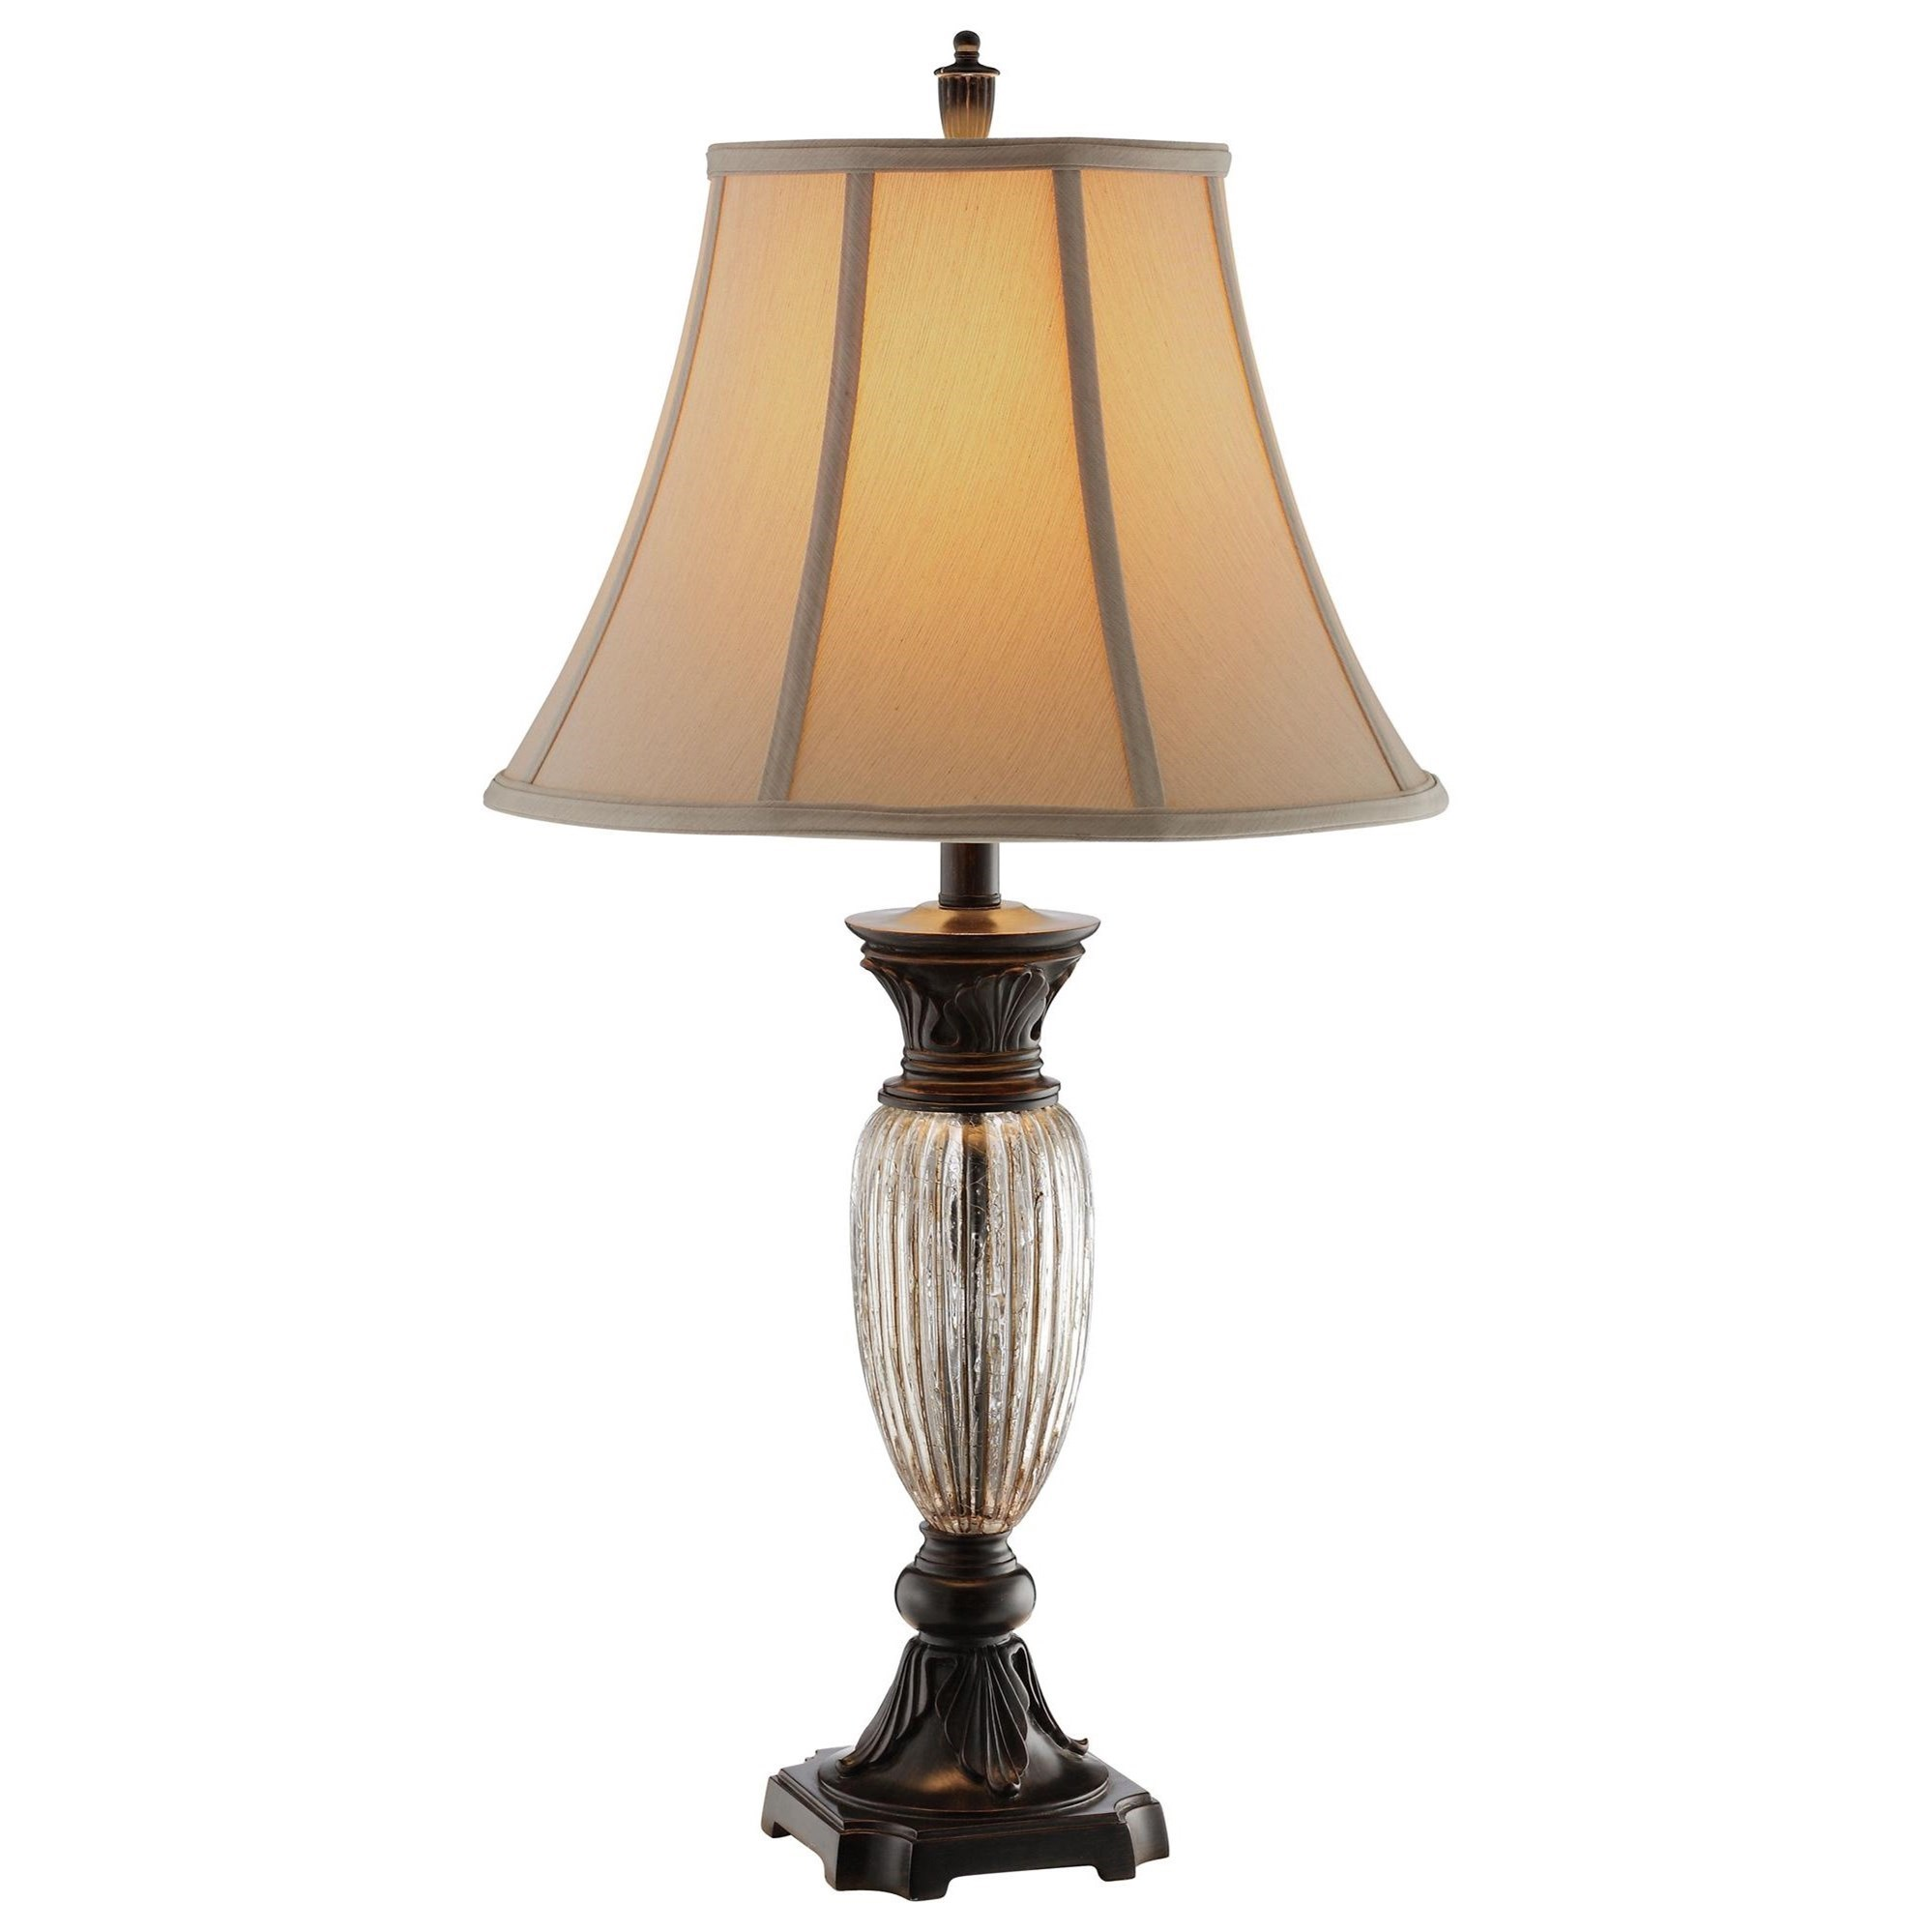 Charming Stein World Lamps Tempe Table Lamp